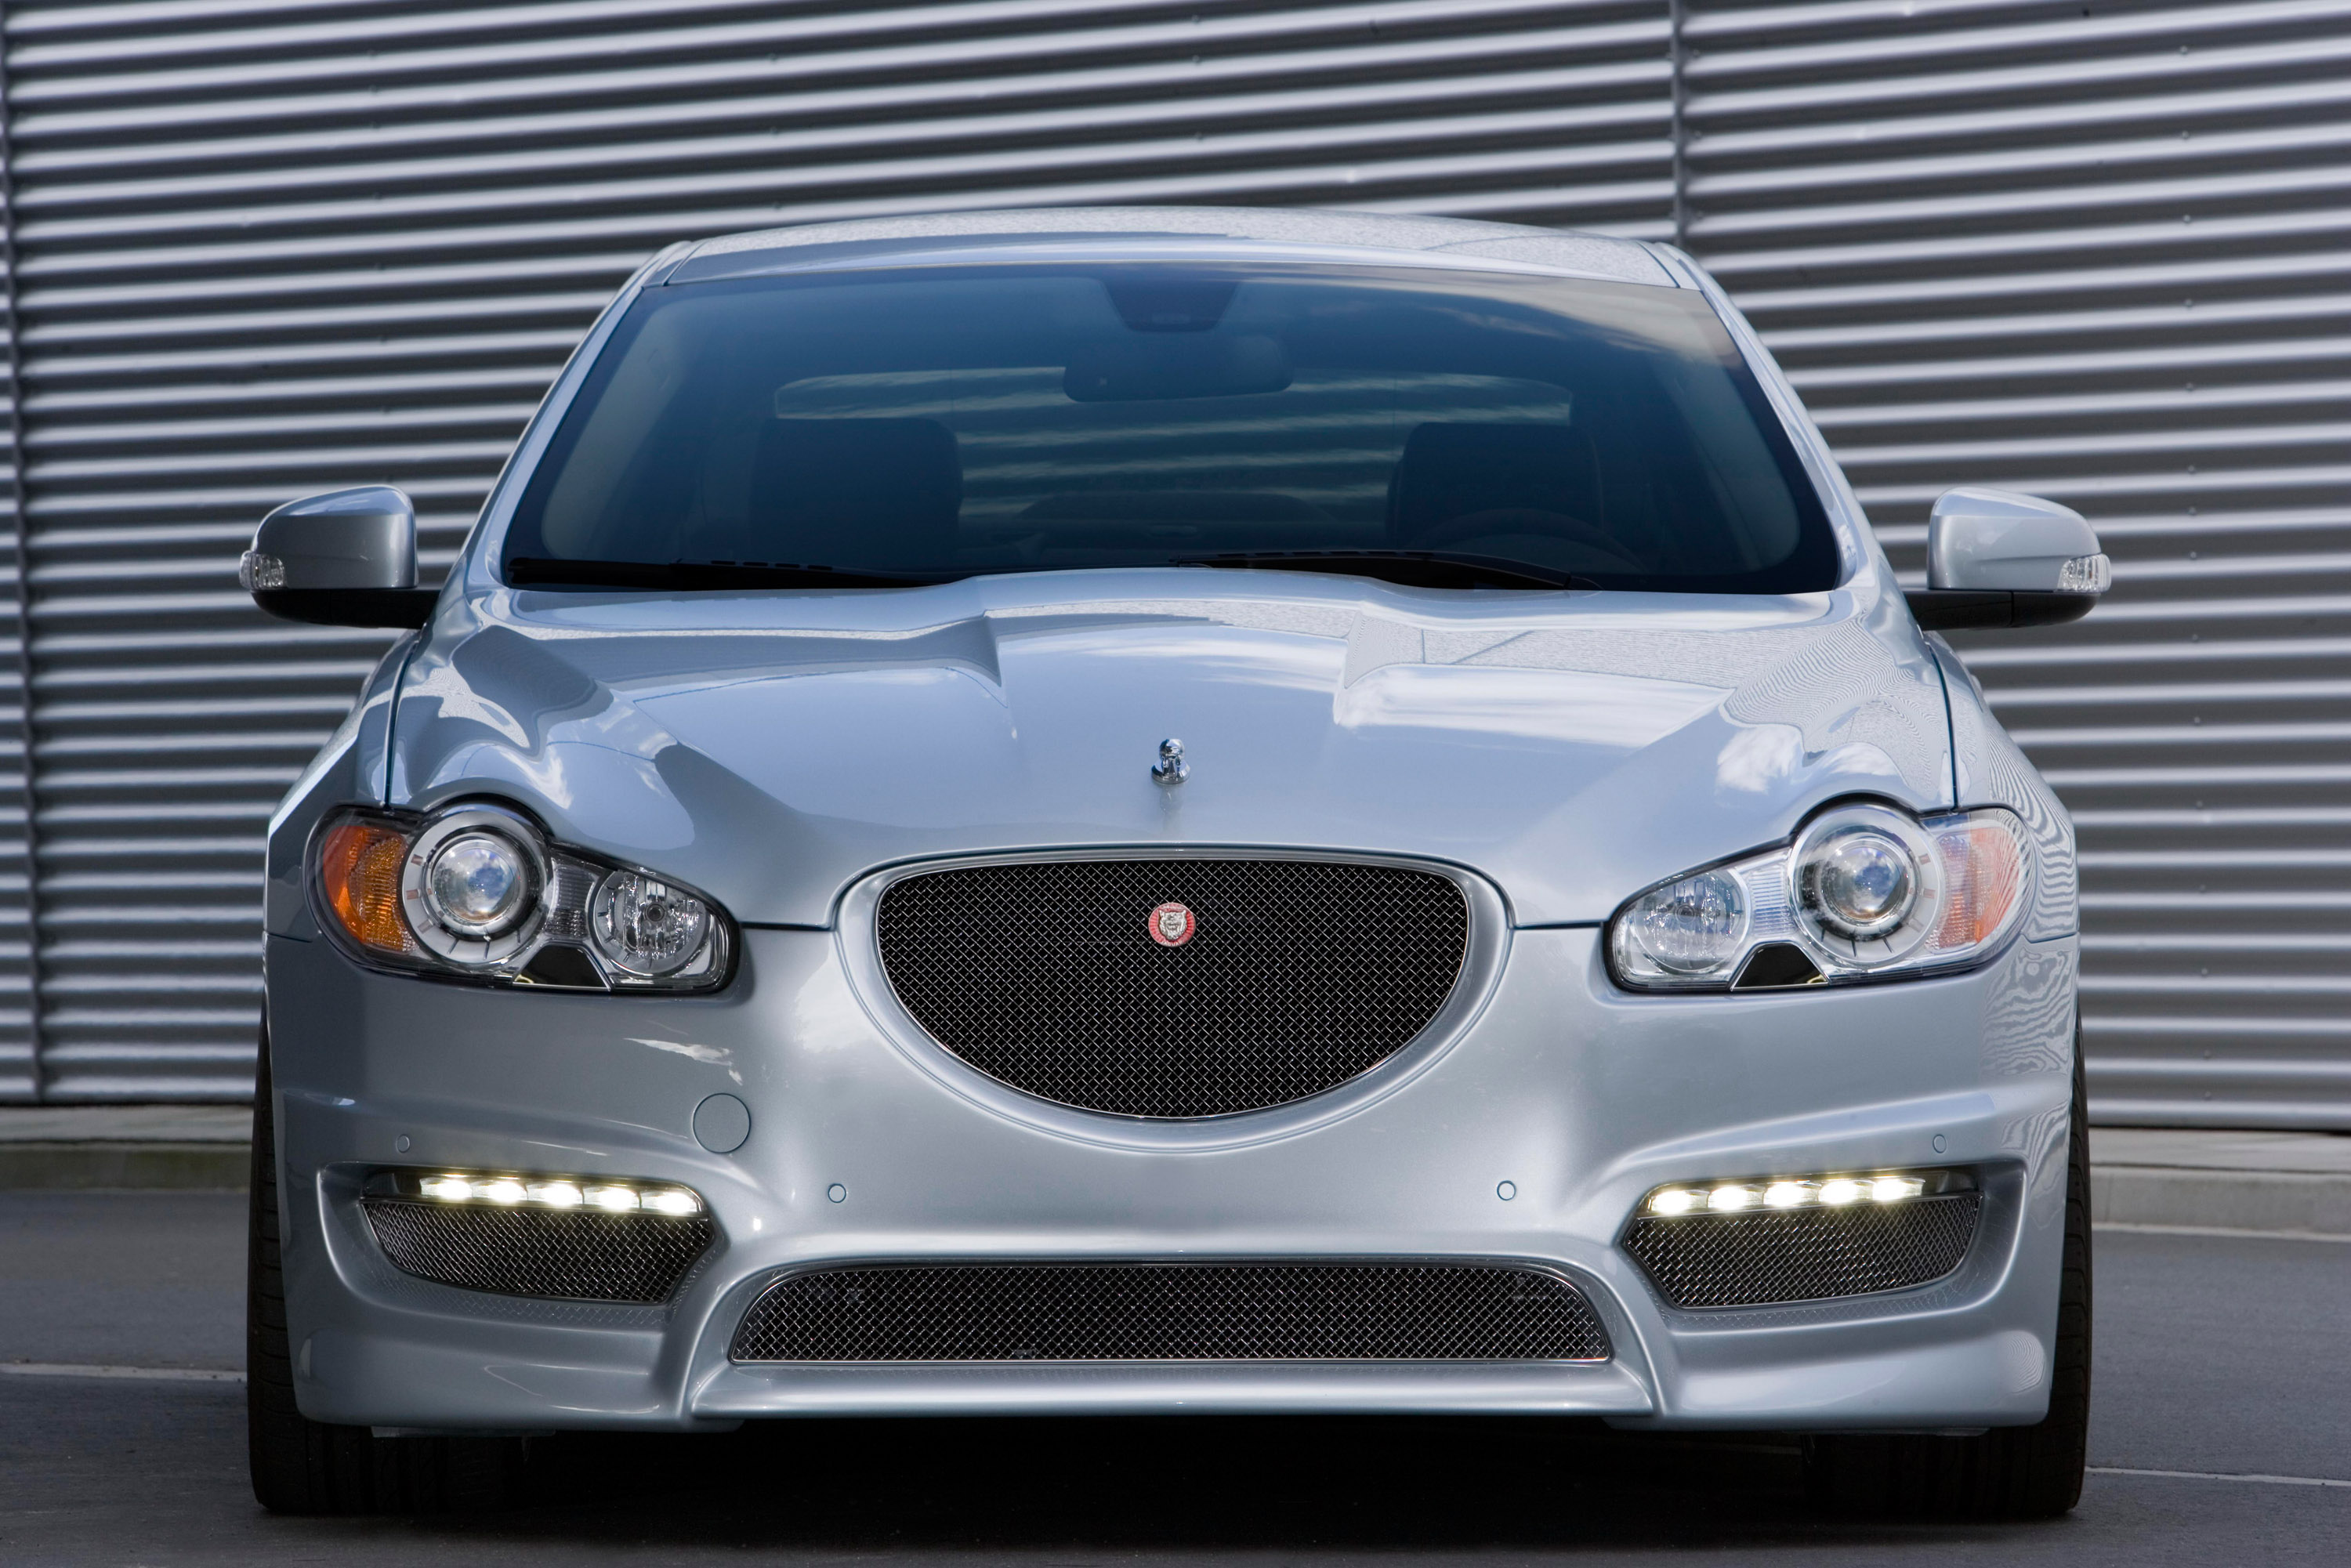 Jaguar XF Front-conversion-set: Safety and style from Arden